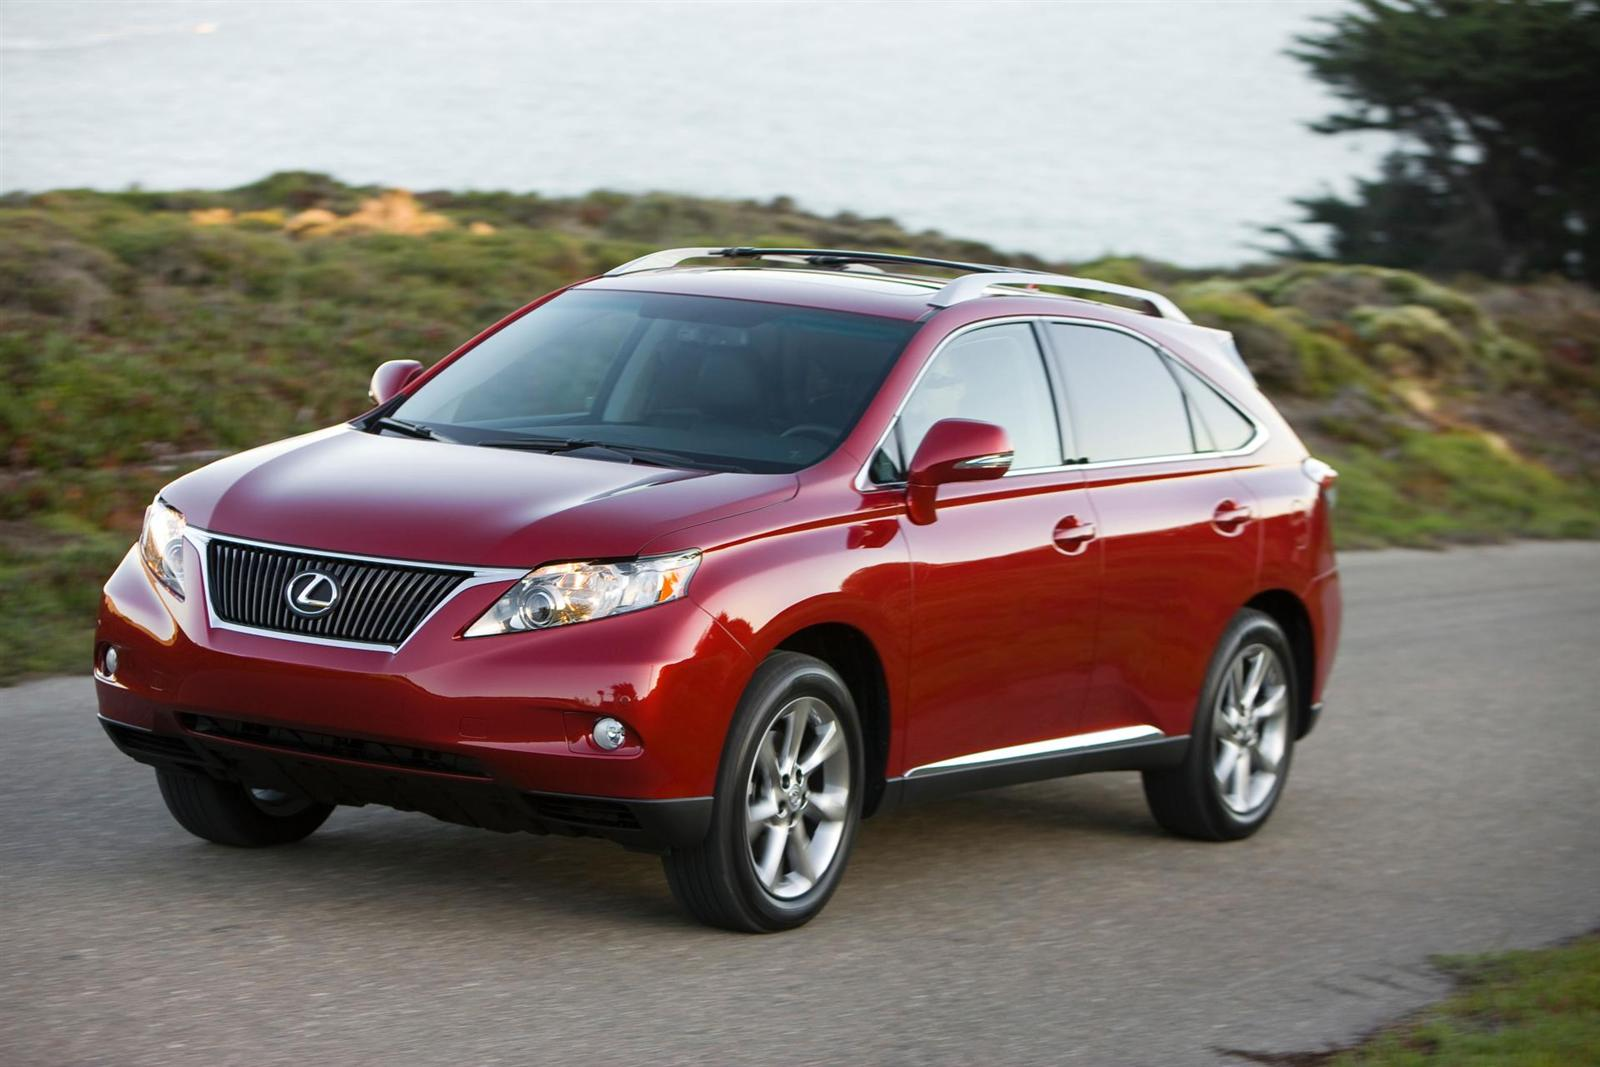 news cx hybrid brand baby to suv rx launch h brother lexus luxury